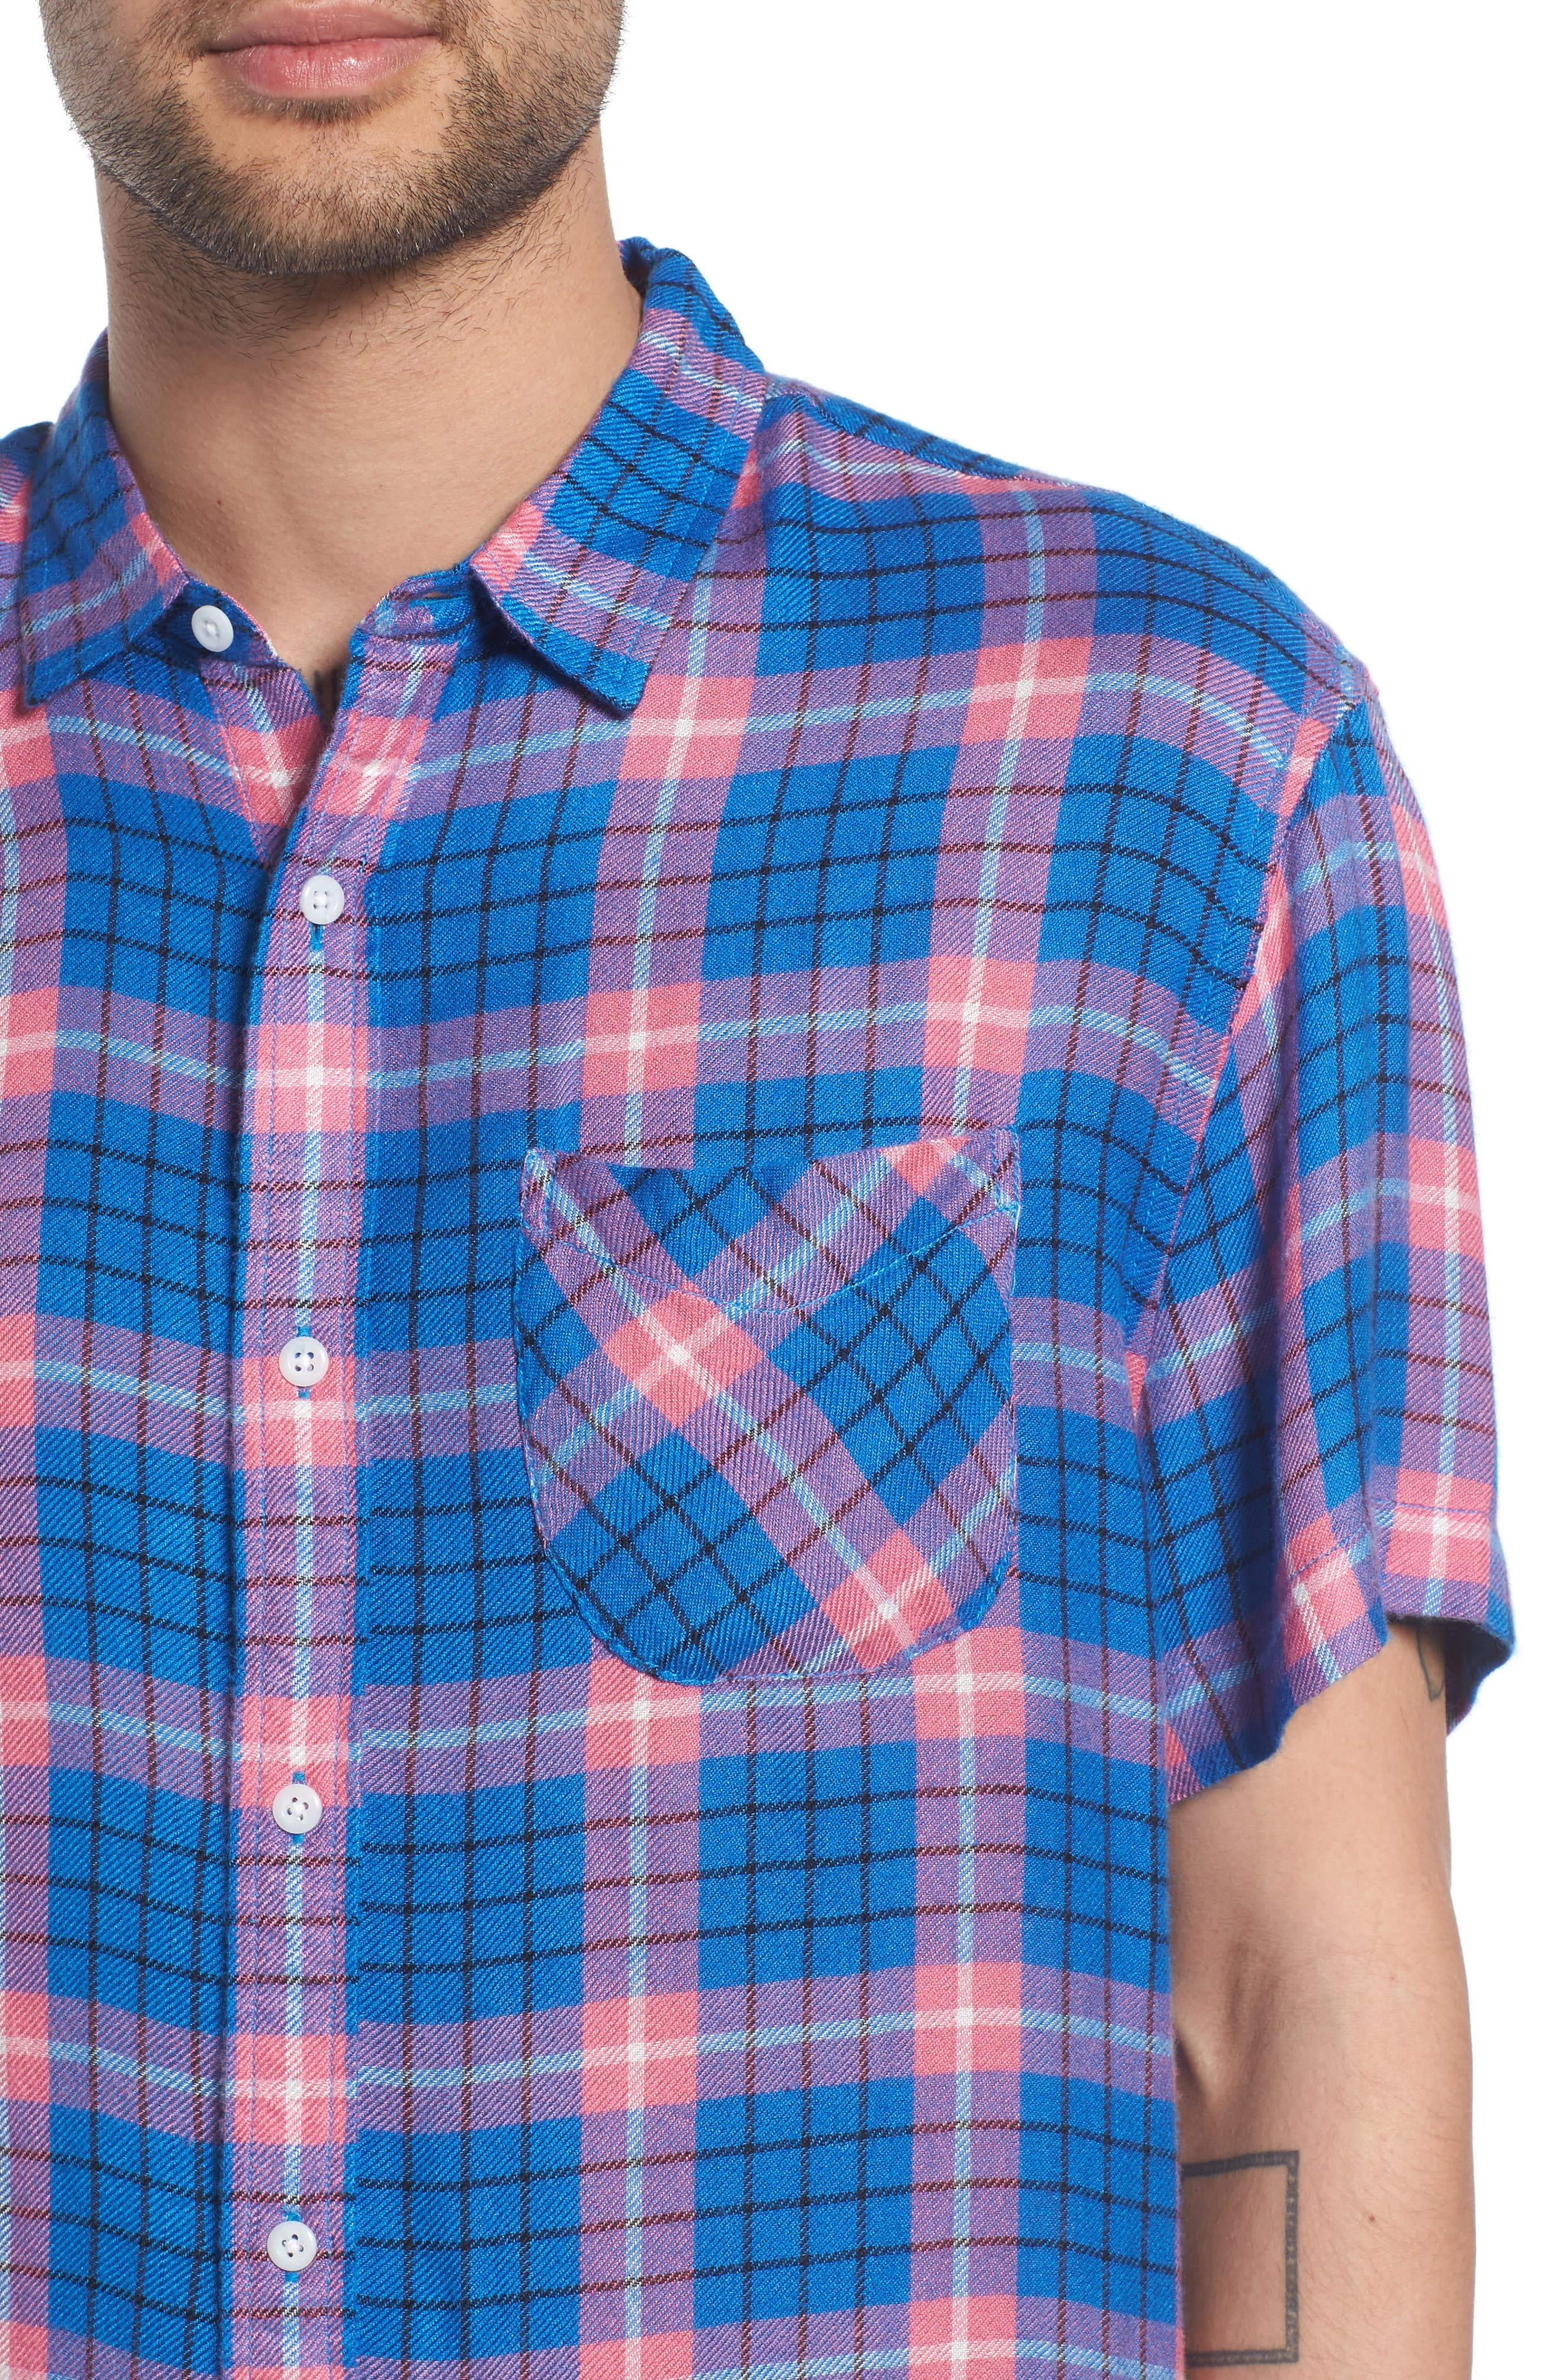 Flannel Woven Shirt,                             Alternate thumbnail 4, color,                             BLUE CAMP PINK BECK PLAID